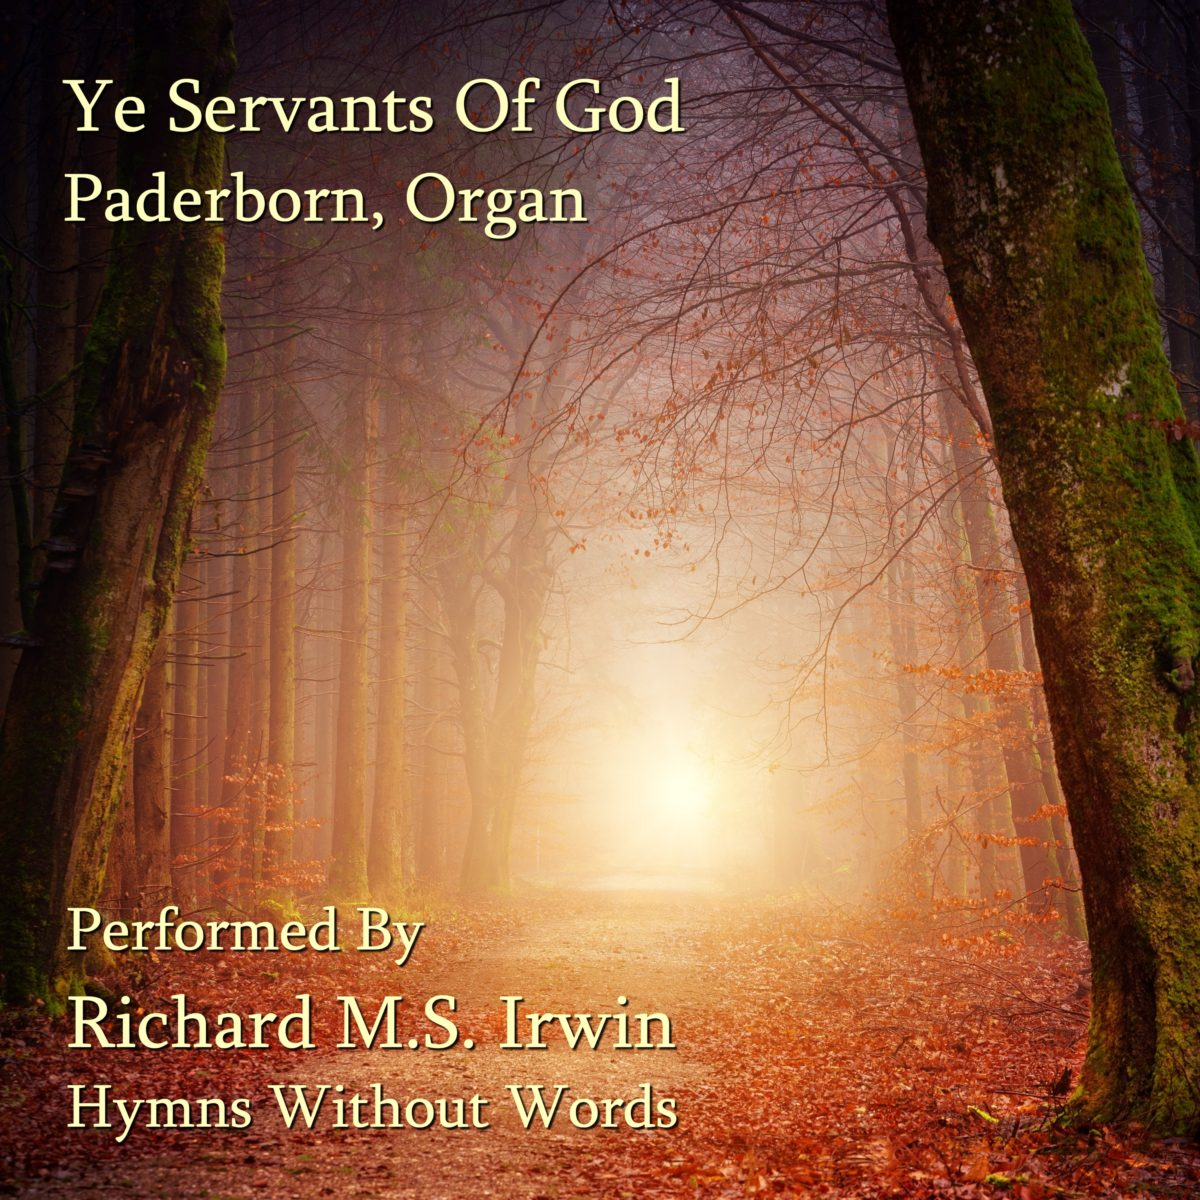 Ye Servants Of God (Paderborn – 4 Verses) – Organ